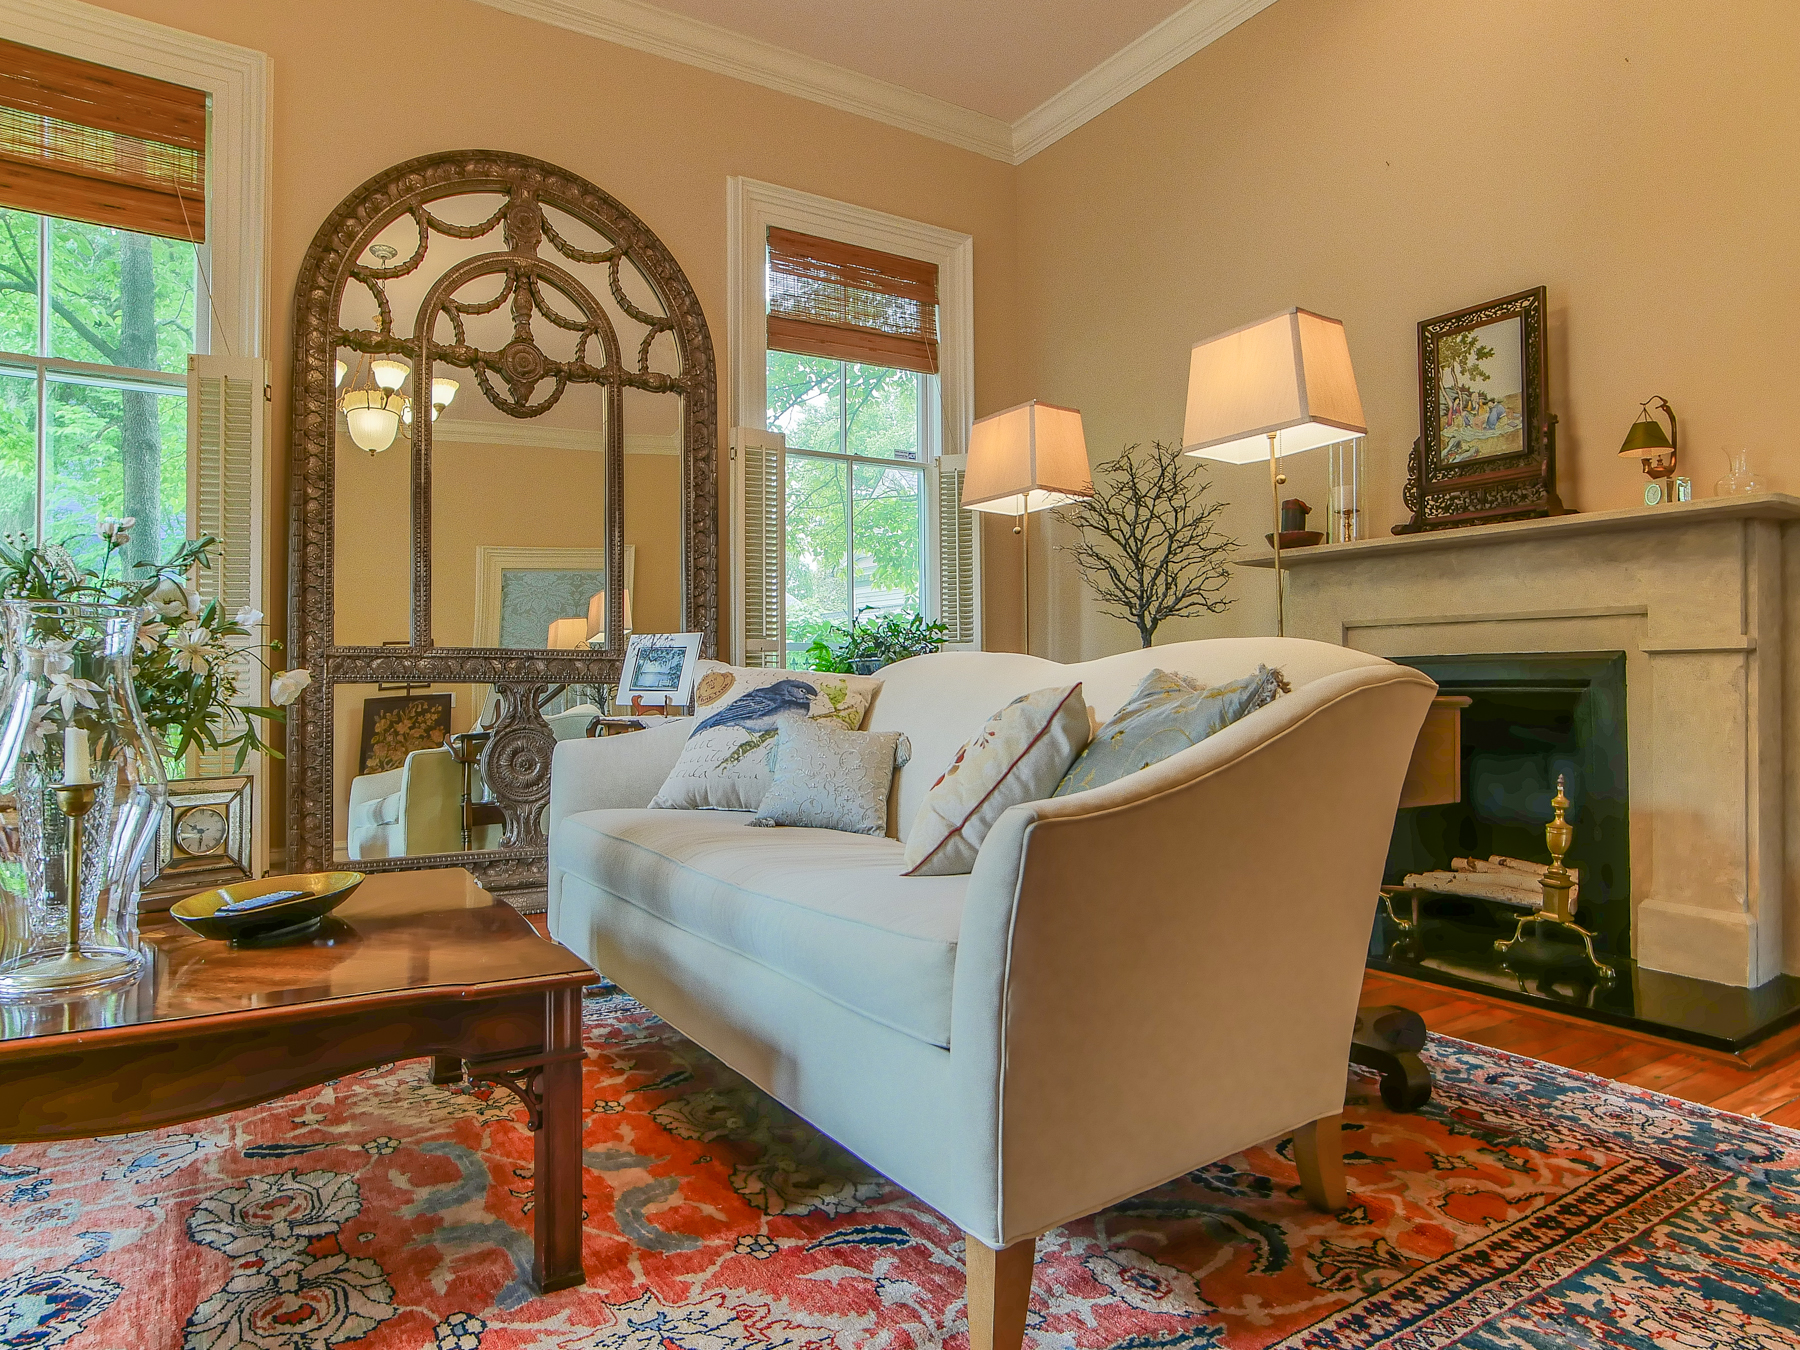 downtown-wilmington-nc-28401-homes-for-sale.